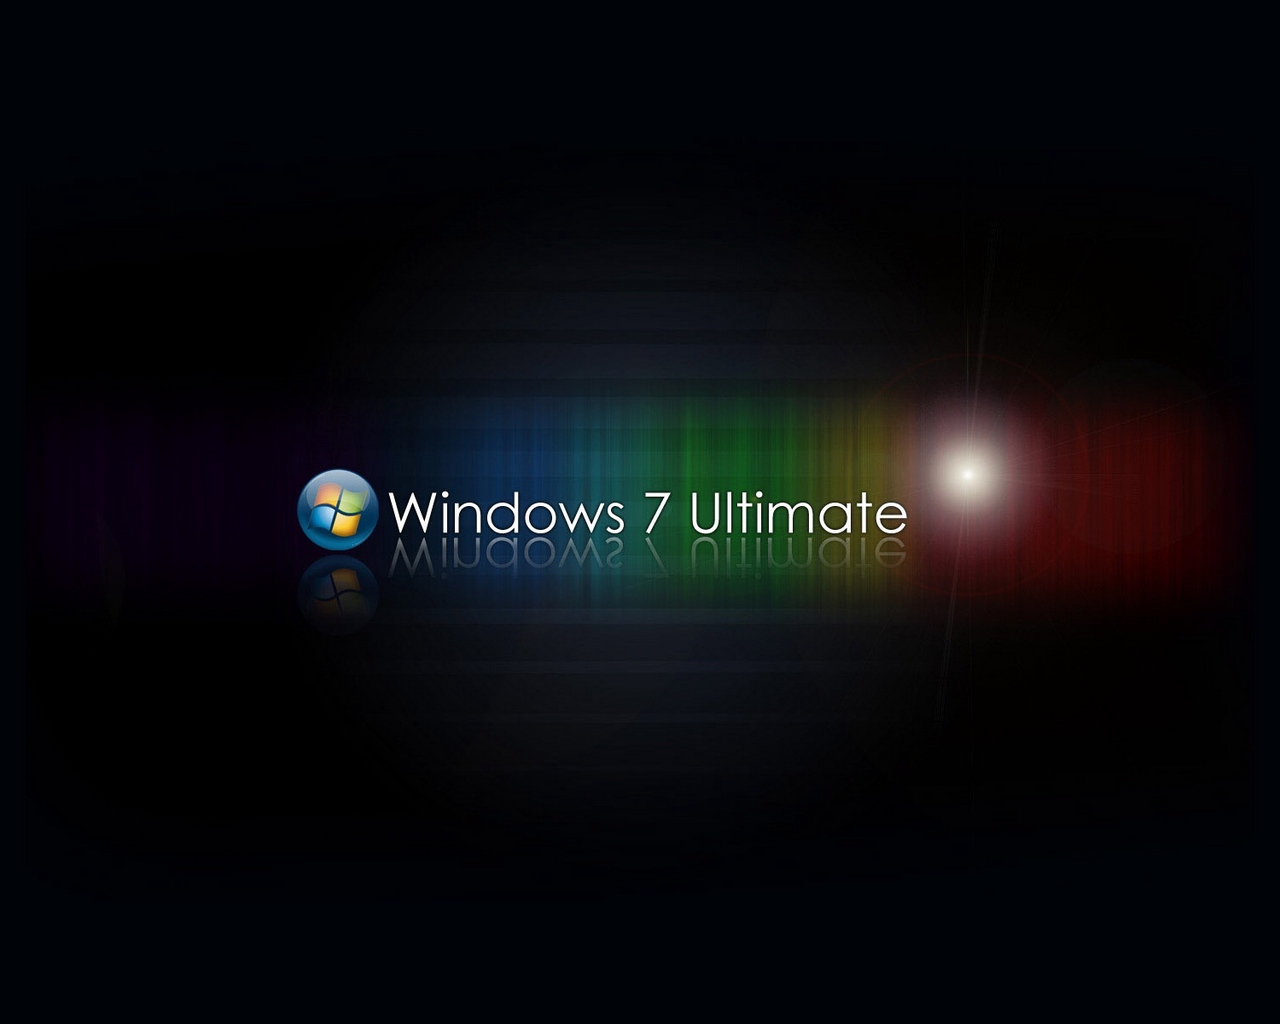 Download wallpaper 1280x1024 windows 7 ultimate ultimate red 1280x1024